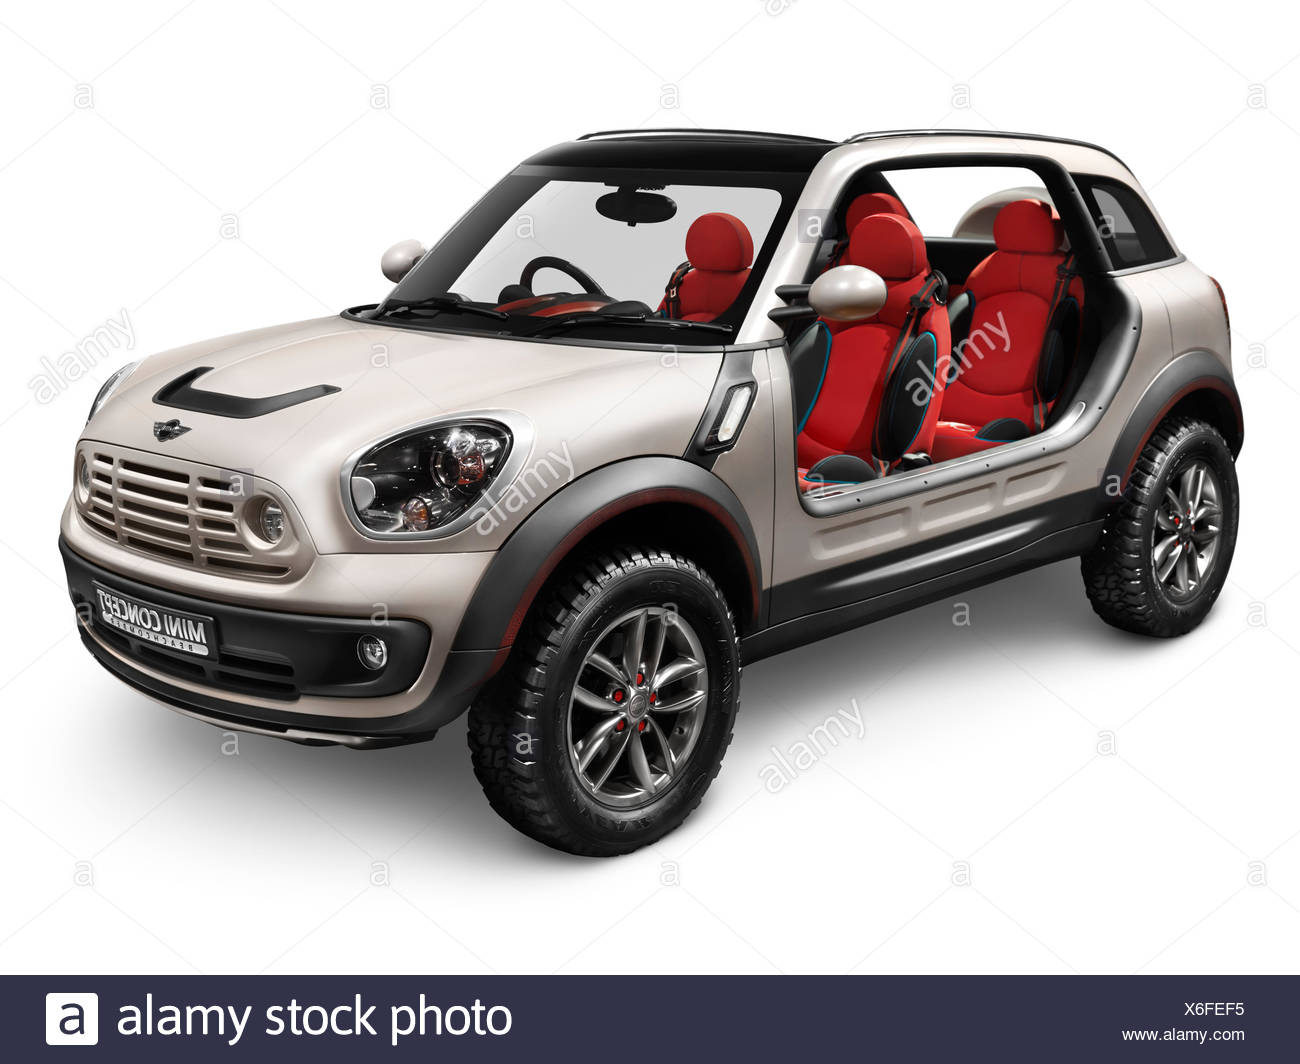 2010 Mini Beachcomber concept car without doors and roof - Stock Image